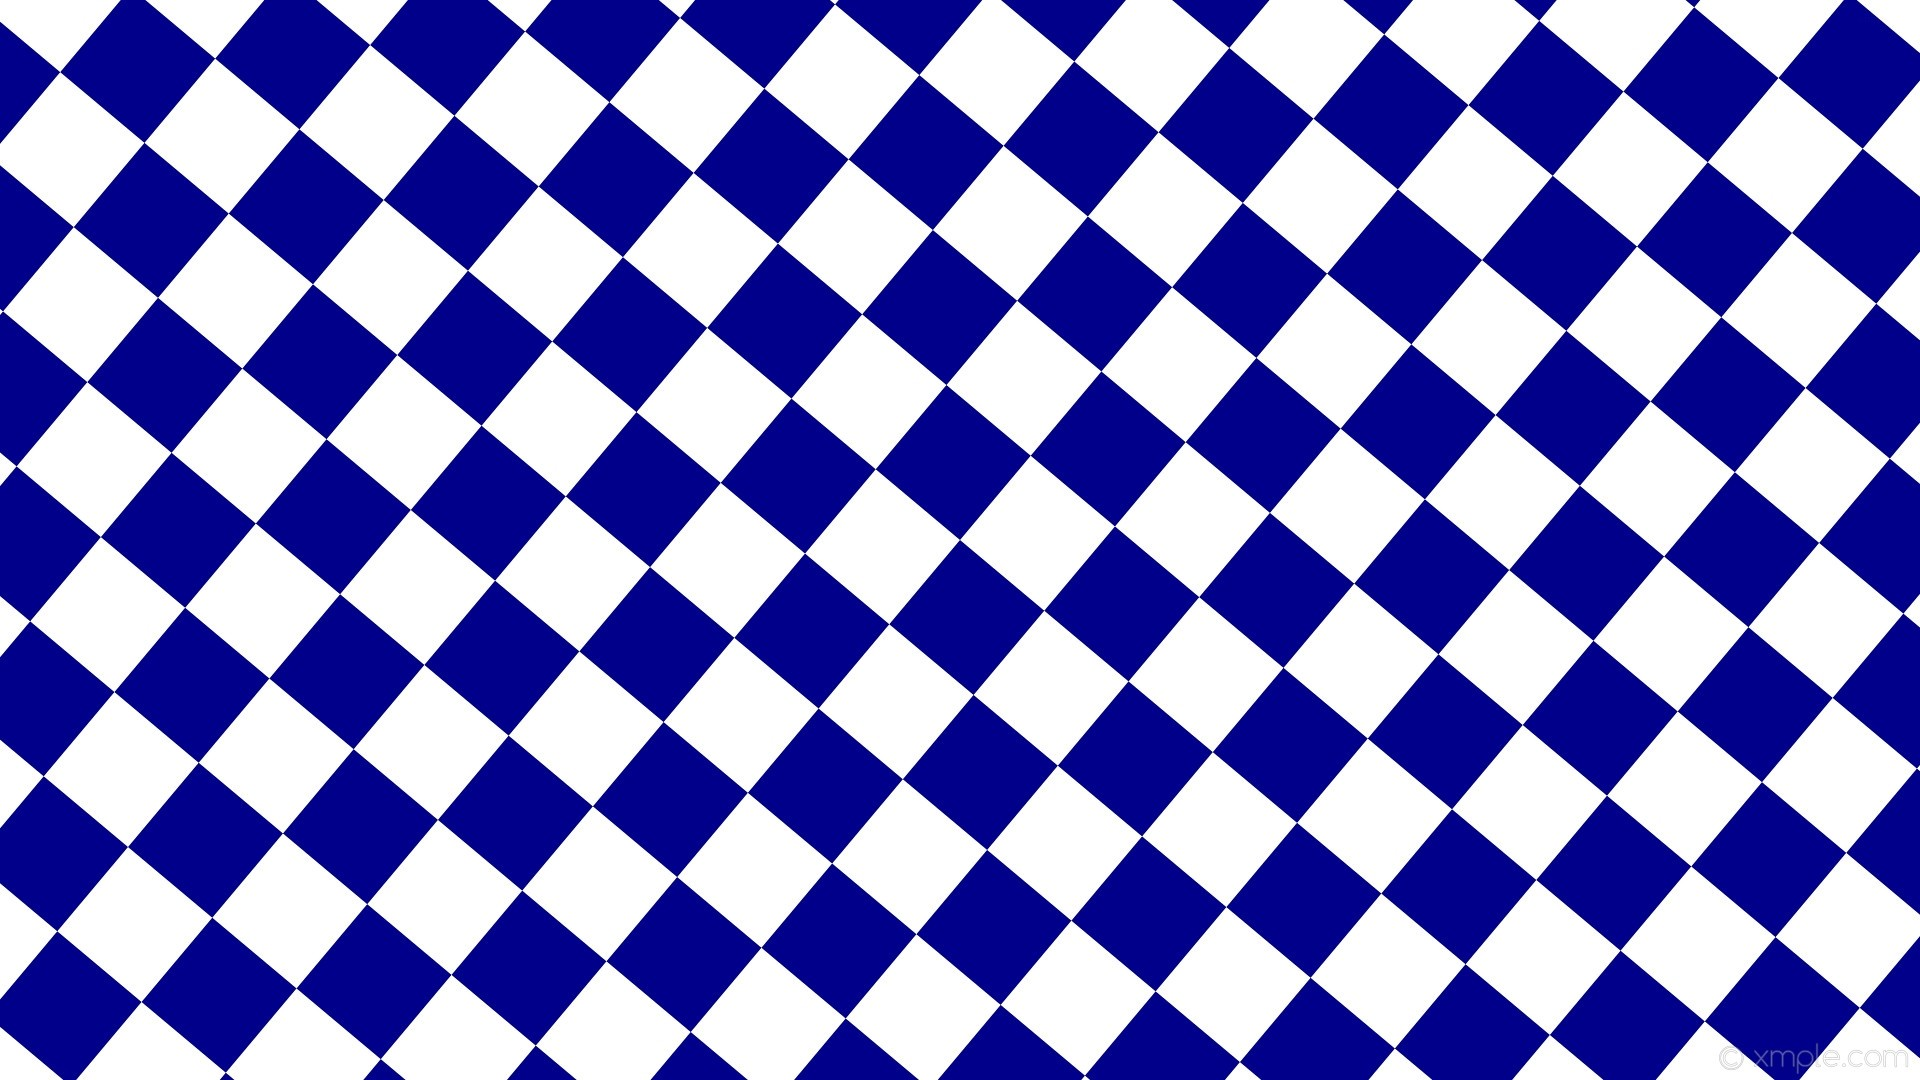 Checkered Picture